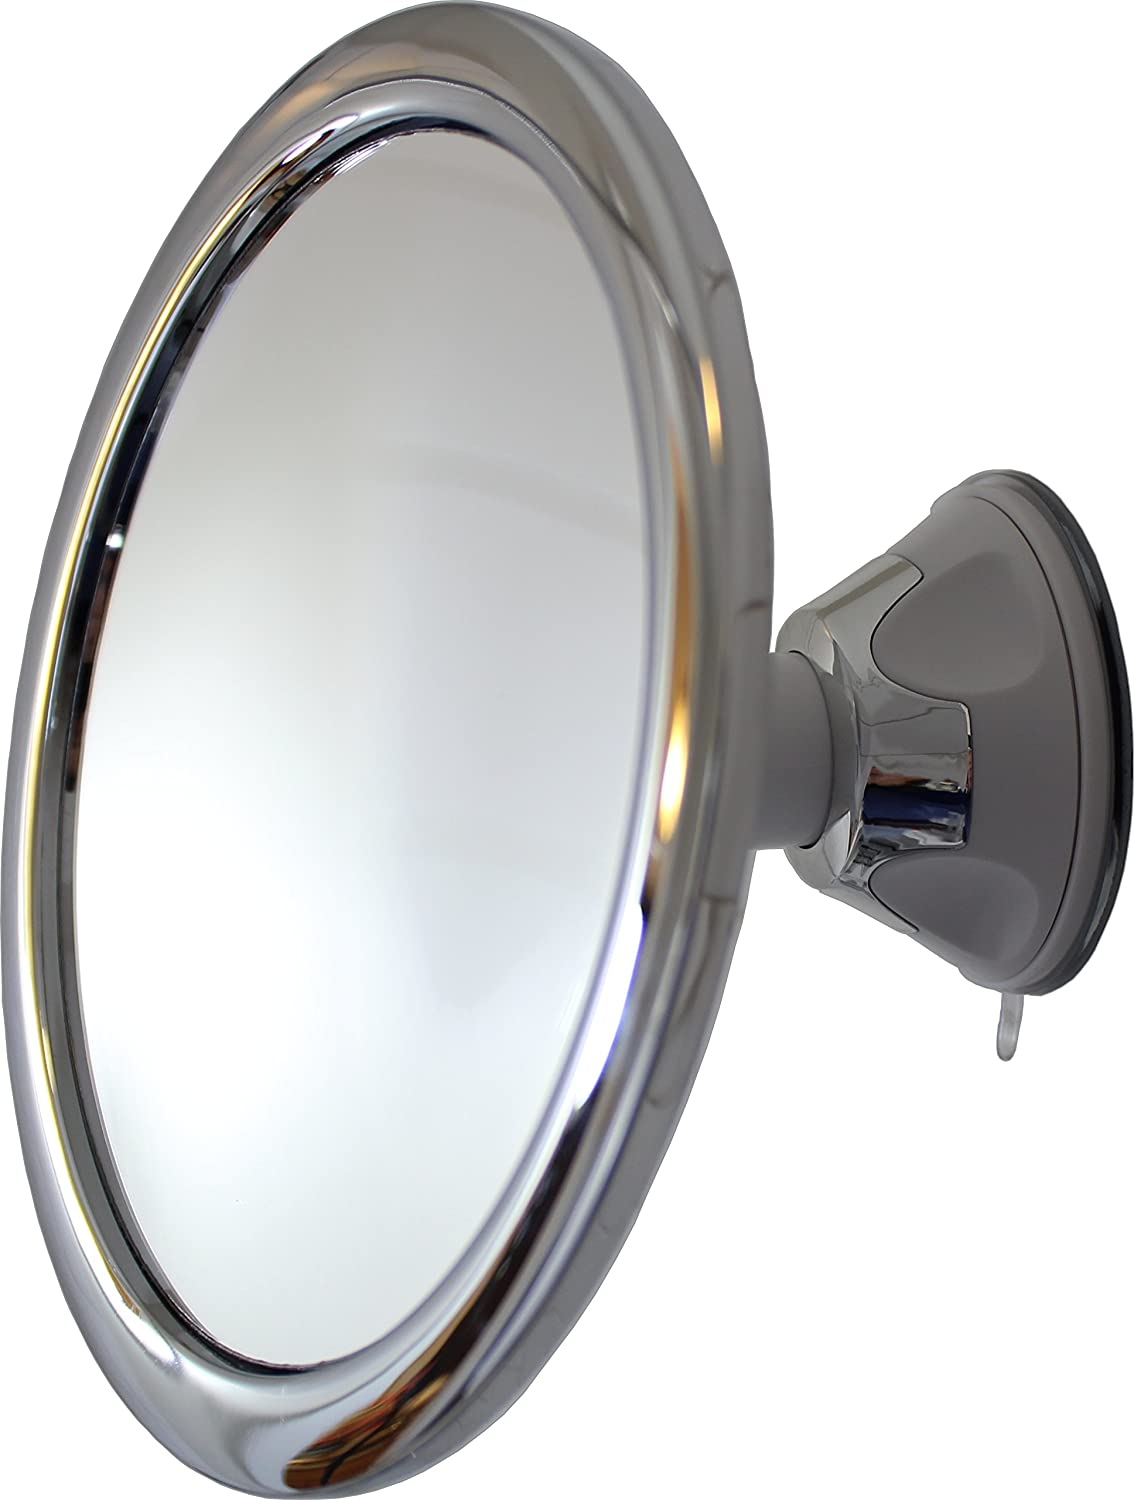 Fog Free Shower Mirror by Mirror On A Rope With Locking Suction Mount and Ball Joint Swivel (1X) sl103